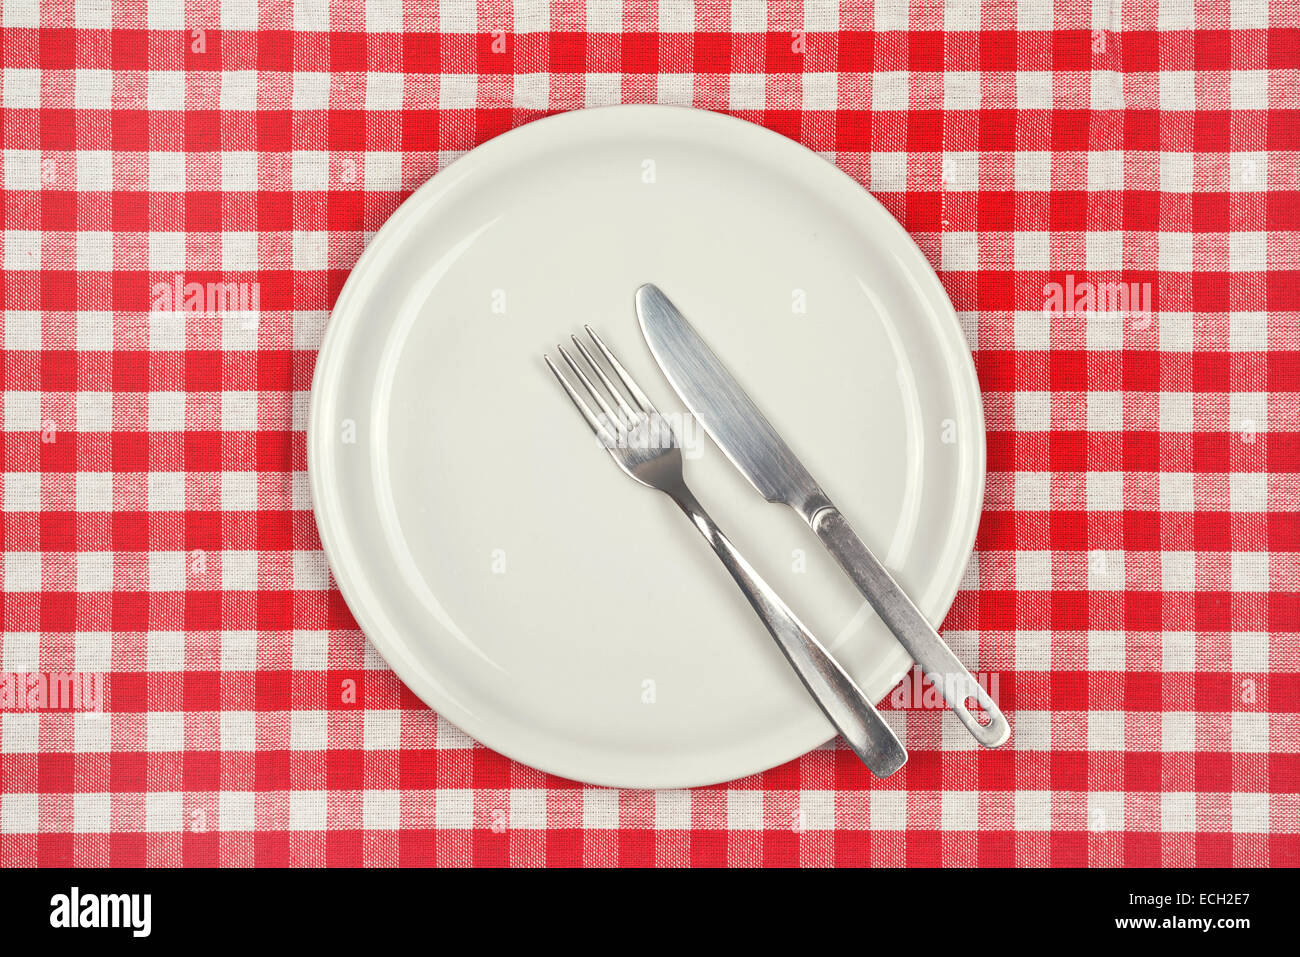 Empty Plate On Restaurant Table With Red And White Checkered Tablecloth